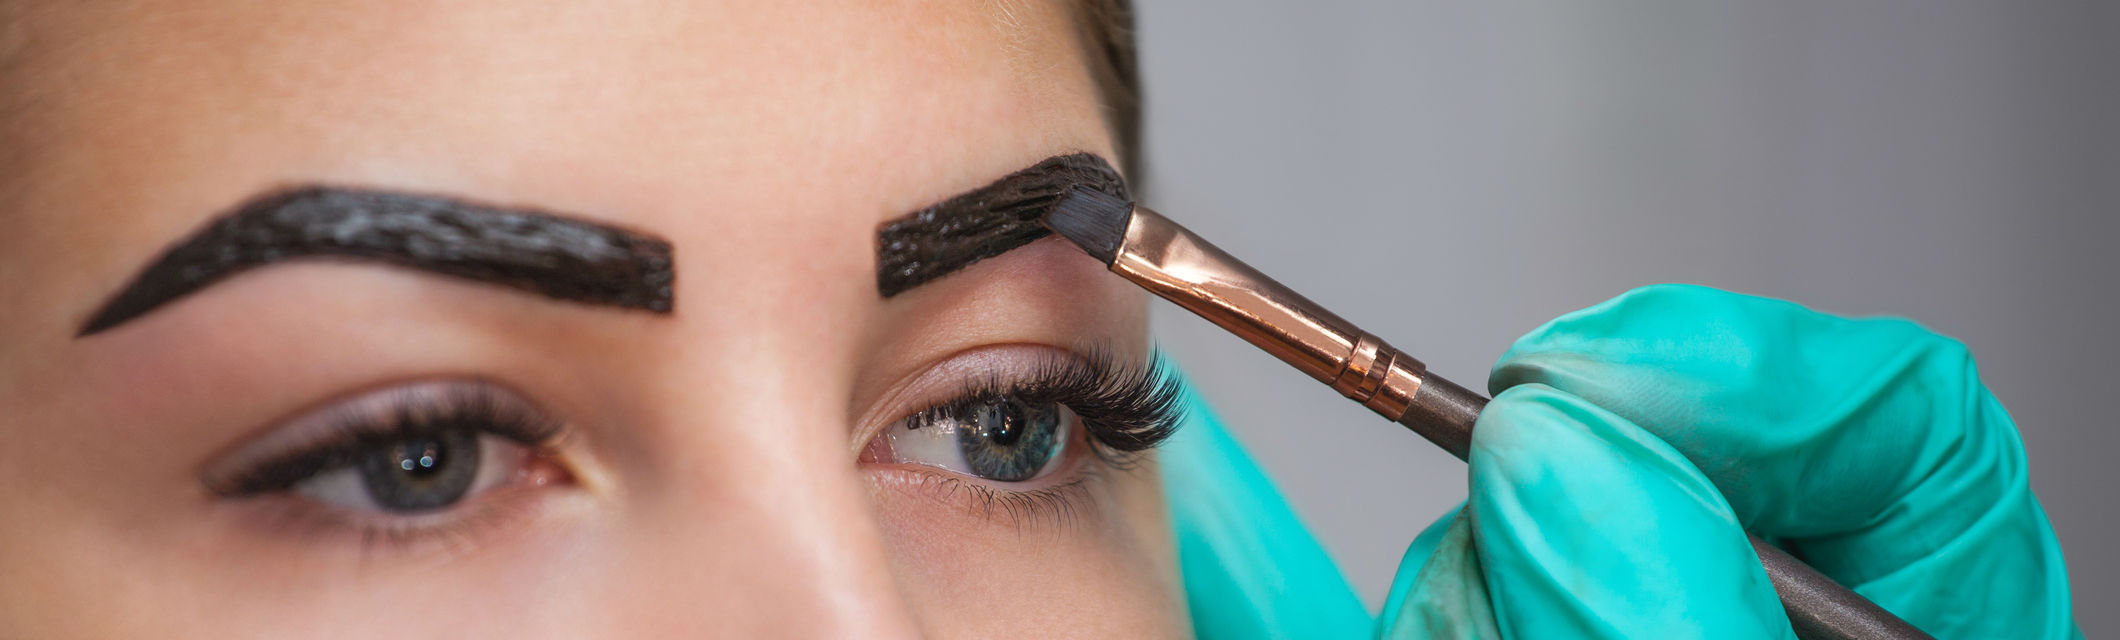 Threading Brow Bar MD